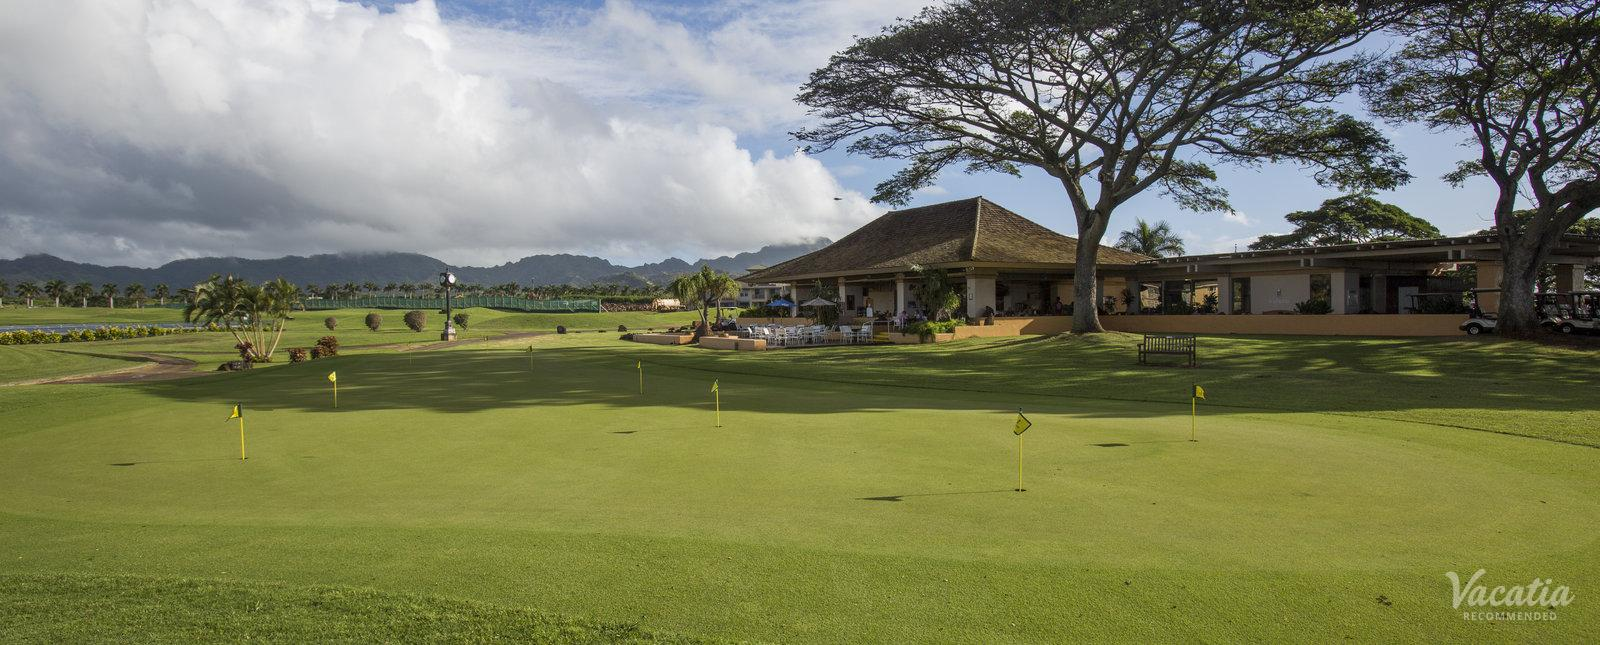 Kiahuna Plantation Golf